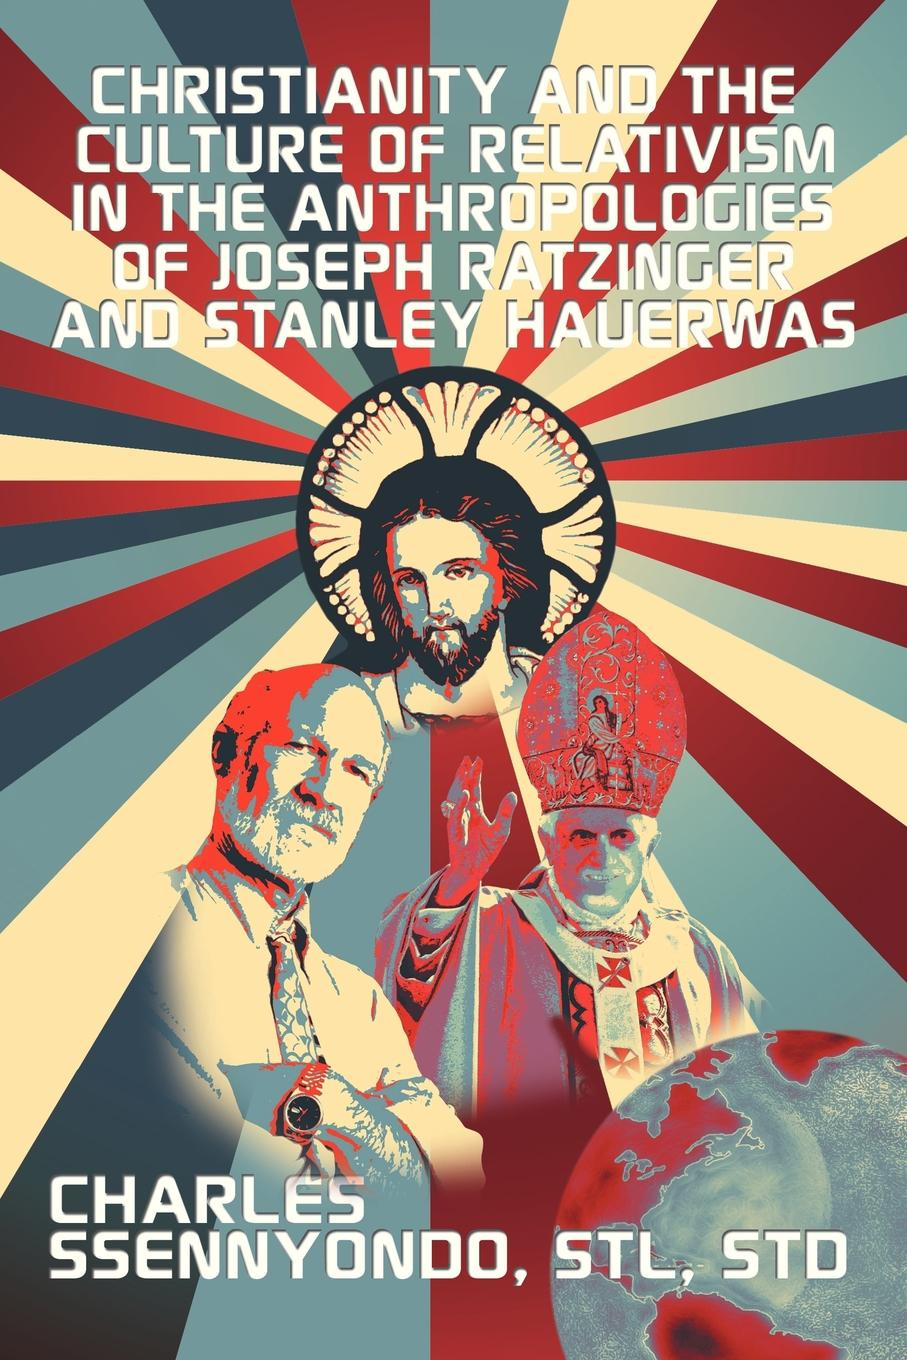 Charles STL STD Ssennyondo Christianity and the Culture of Relativism in the Anthropologies of Joseph Ratzinger and Stanley Hauerwas. (Rediscovering the Truth of Christianity) the rise of network christianity